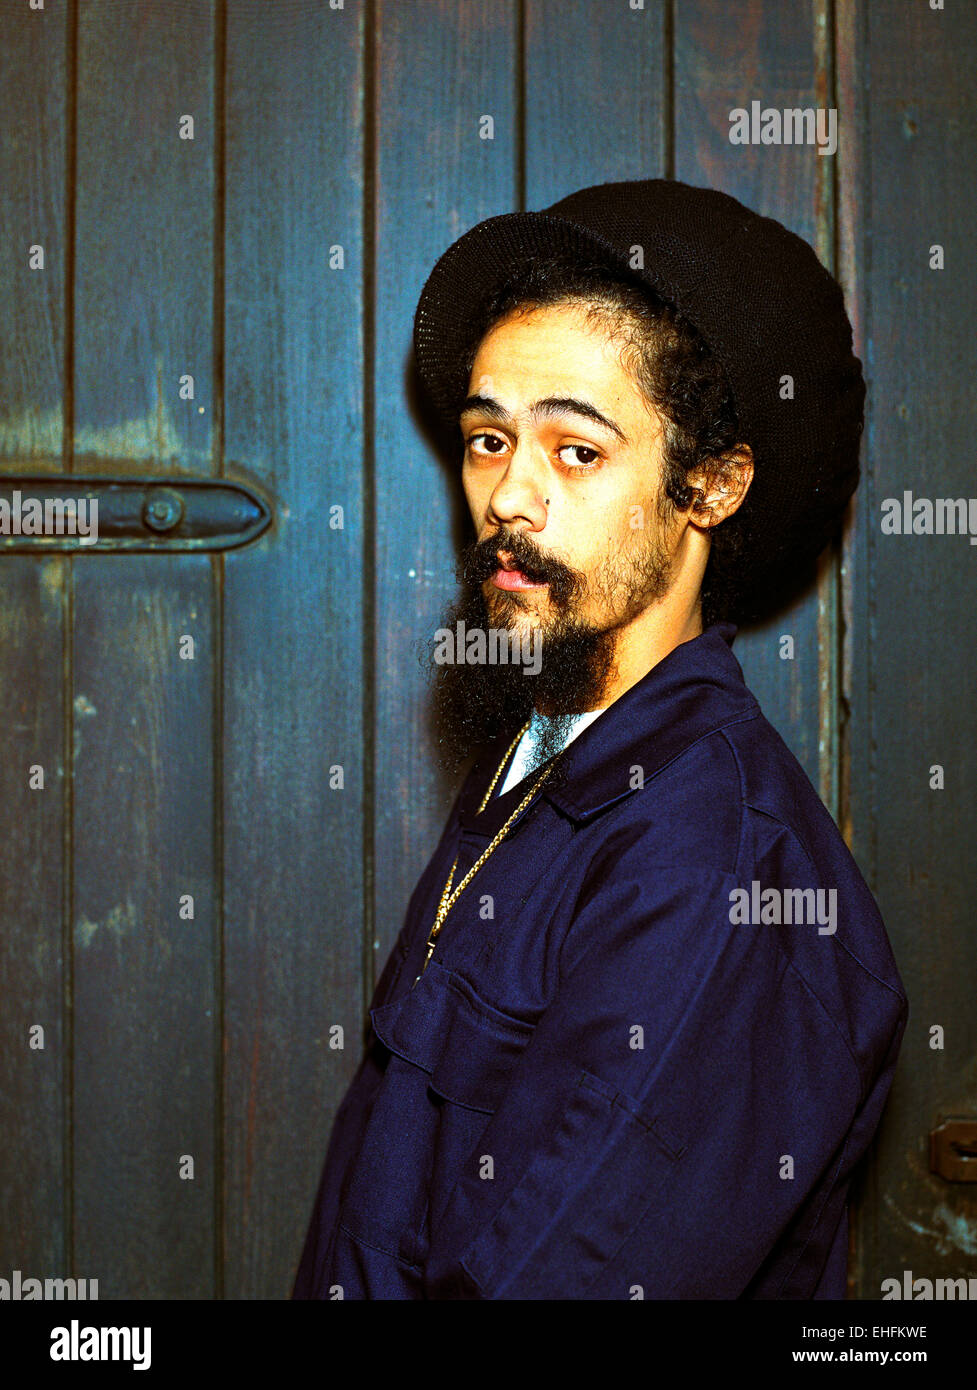 Damian marley stock photos damian marley stock images alamy portrait of damian marley stock image thecheapjerseys Choice Image